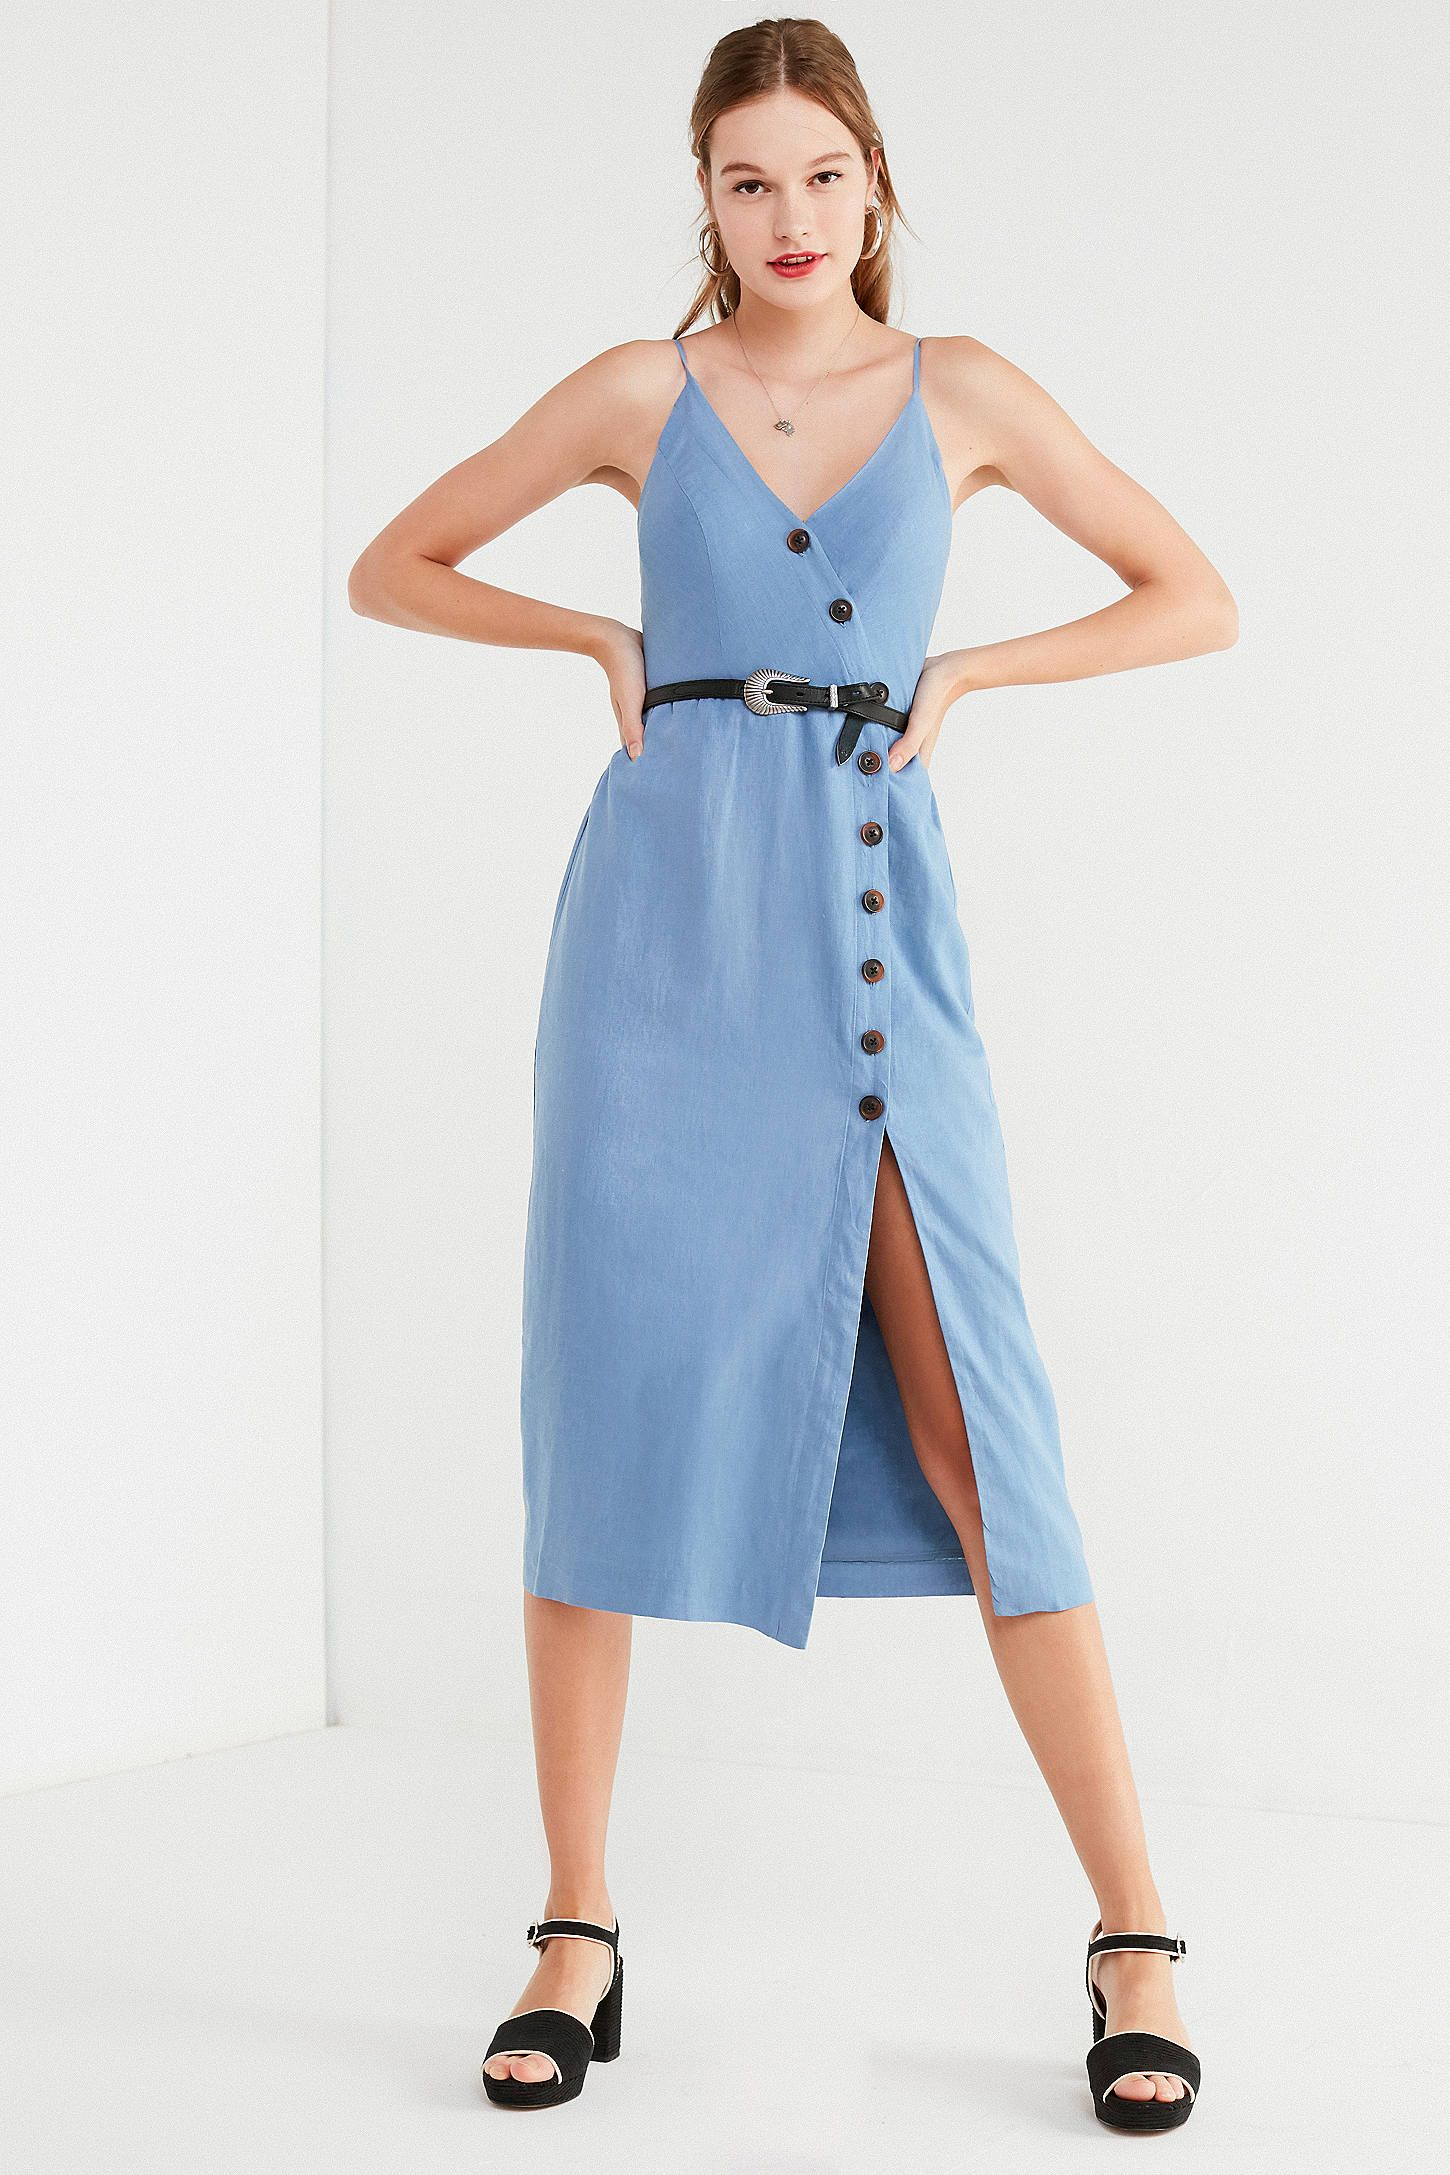 2703a42121c Shop UO Amber Button-Down Linen Midi Dress at Urban Outfitters today. We  carry all the latest styles